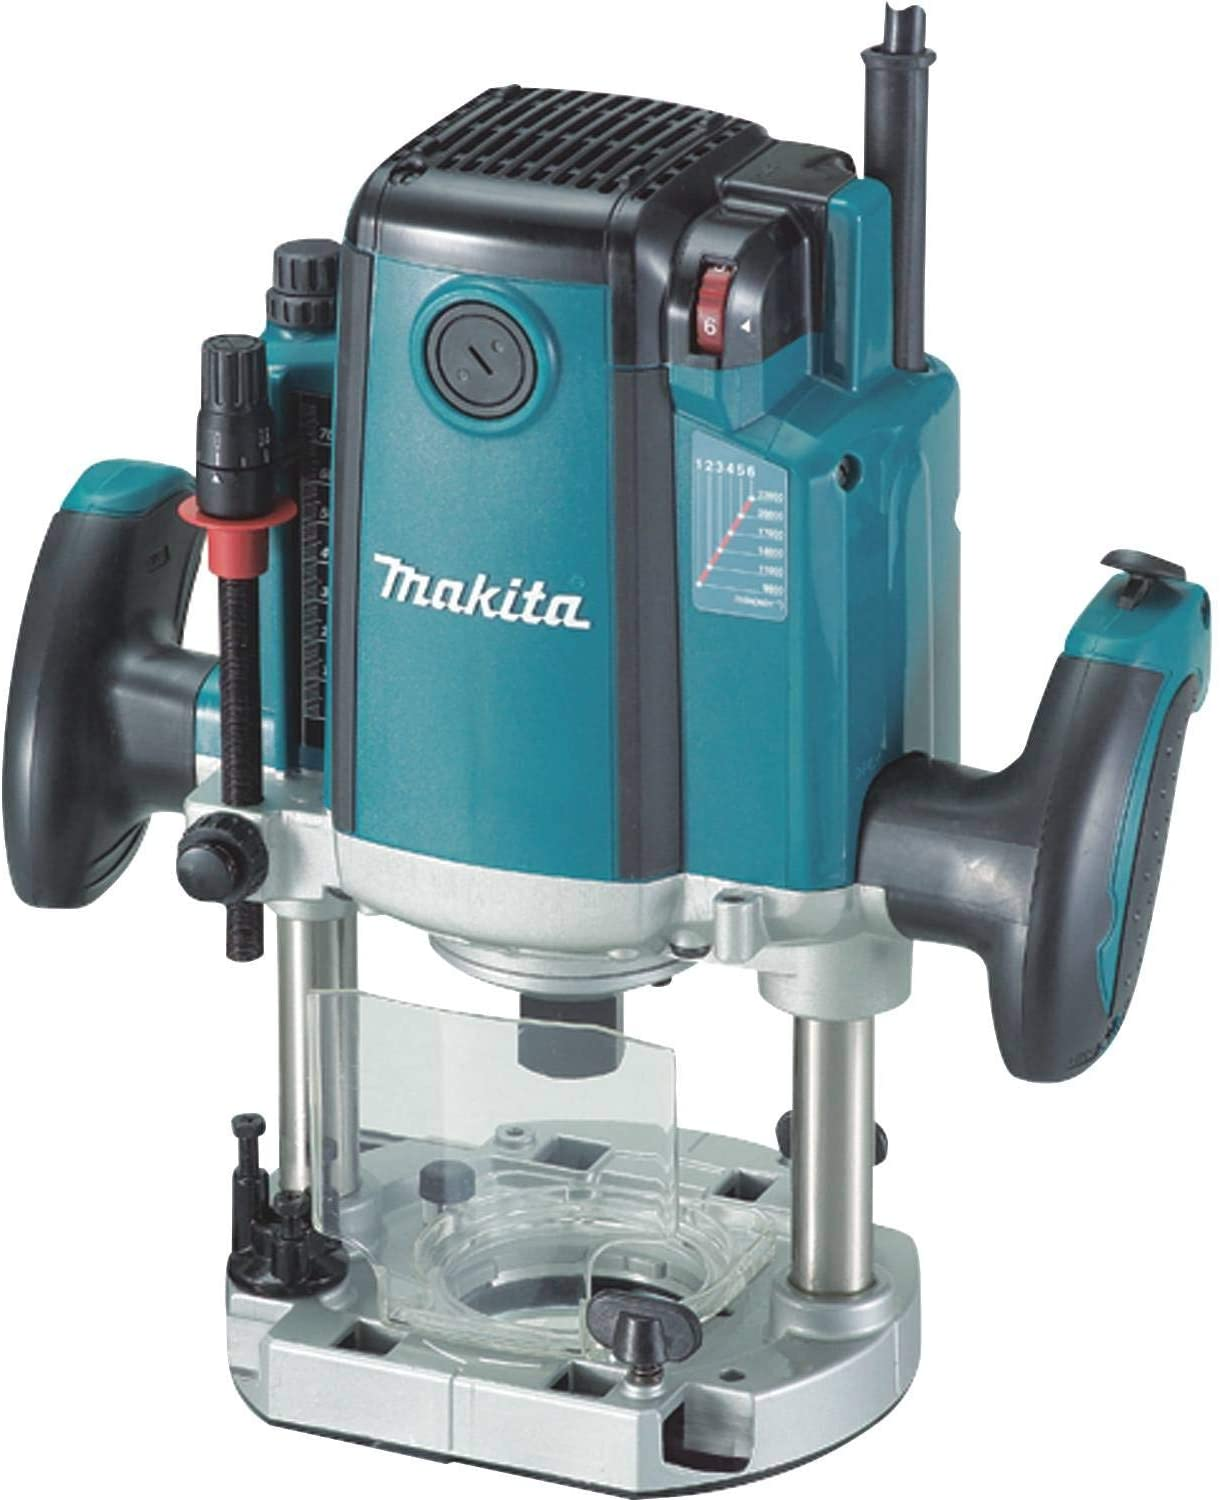 HP Plunge Router by Makita